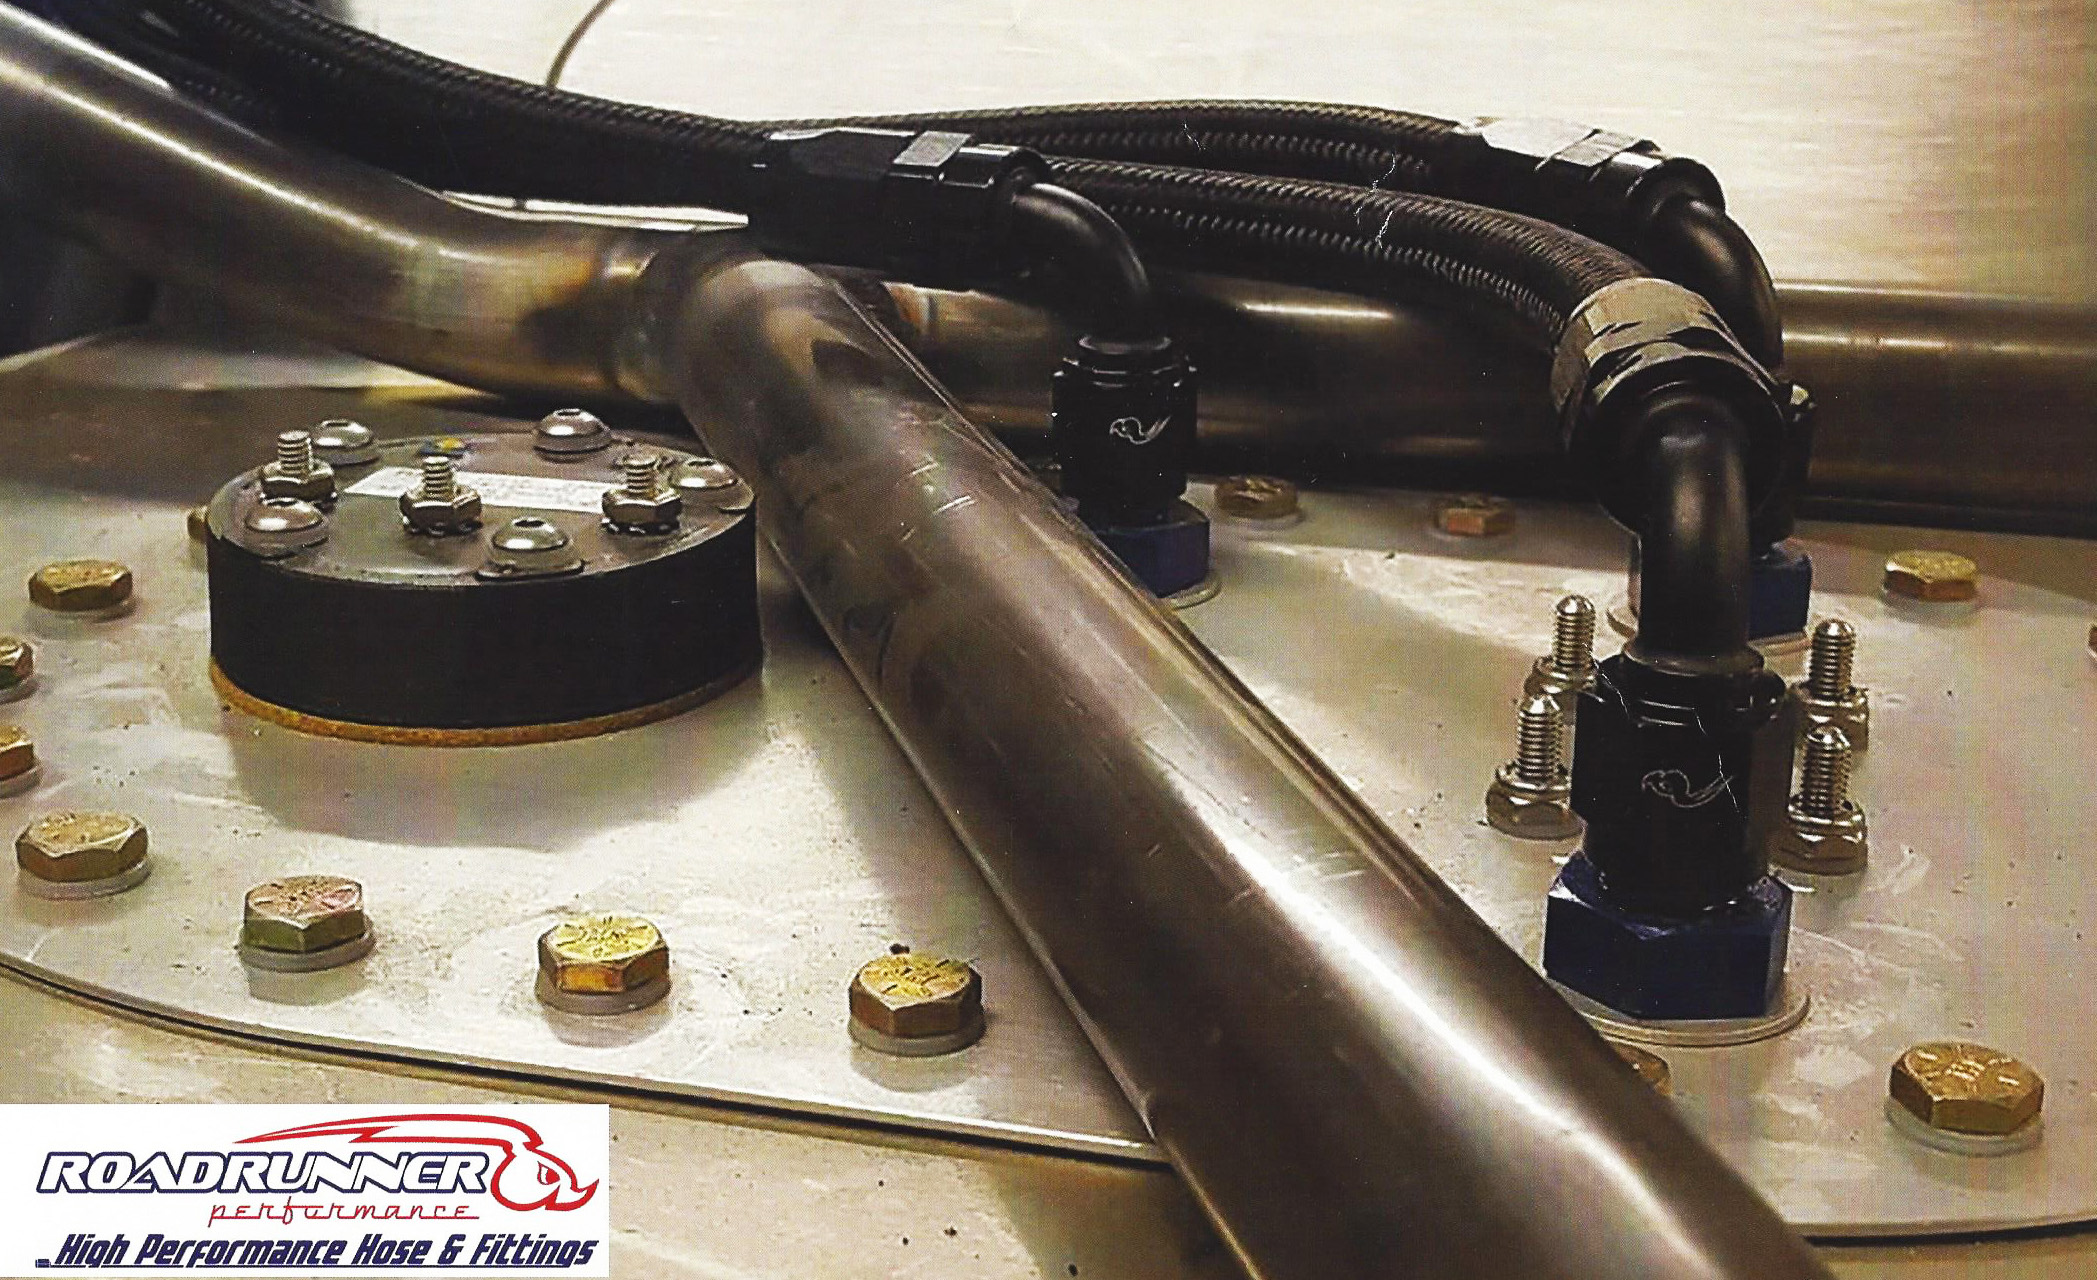 Race Car Plumbing 101: What You Need To Know About Car Plumbing